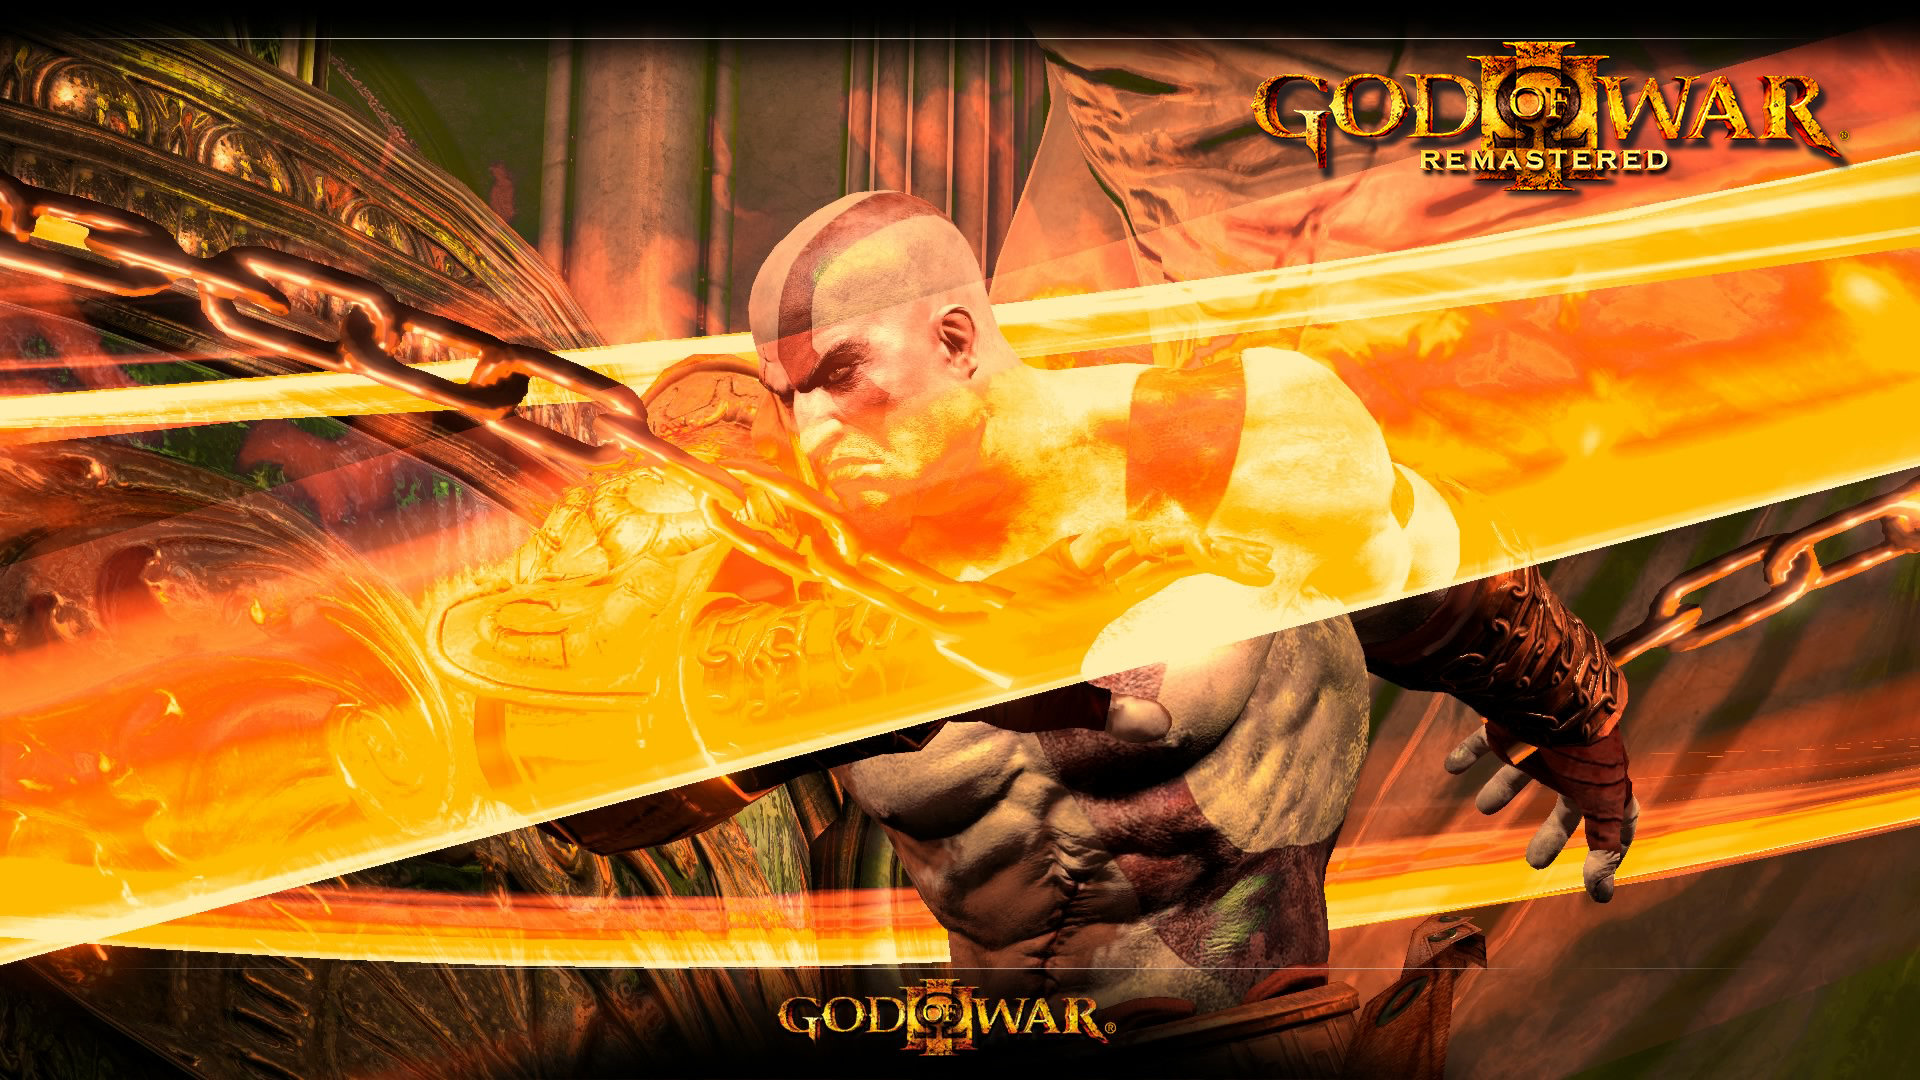 God of war 3 remastered ps4 download size | God of War 3 PC